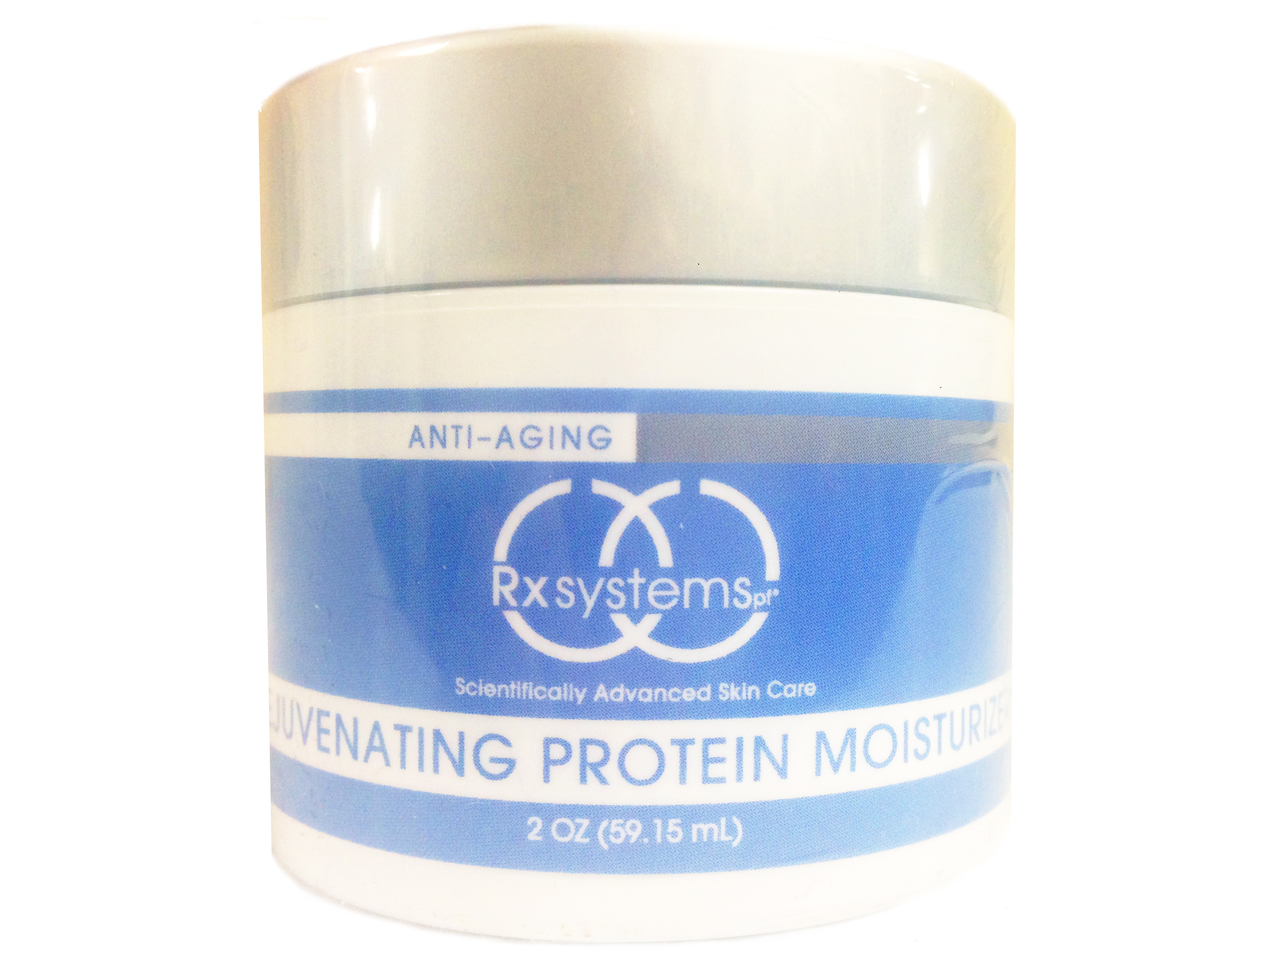 Rx Systems Rejuvenating Protein Moisturizer 2 oz